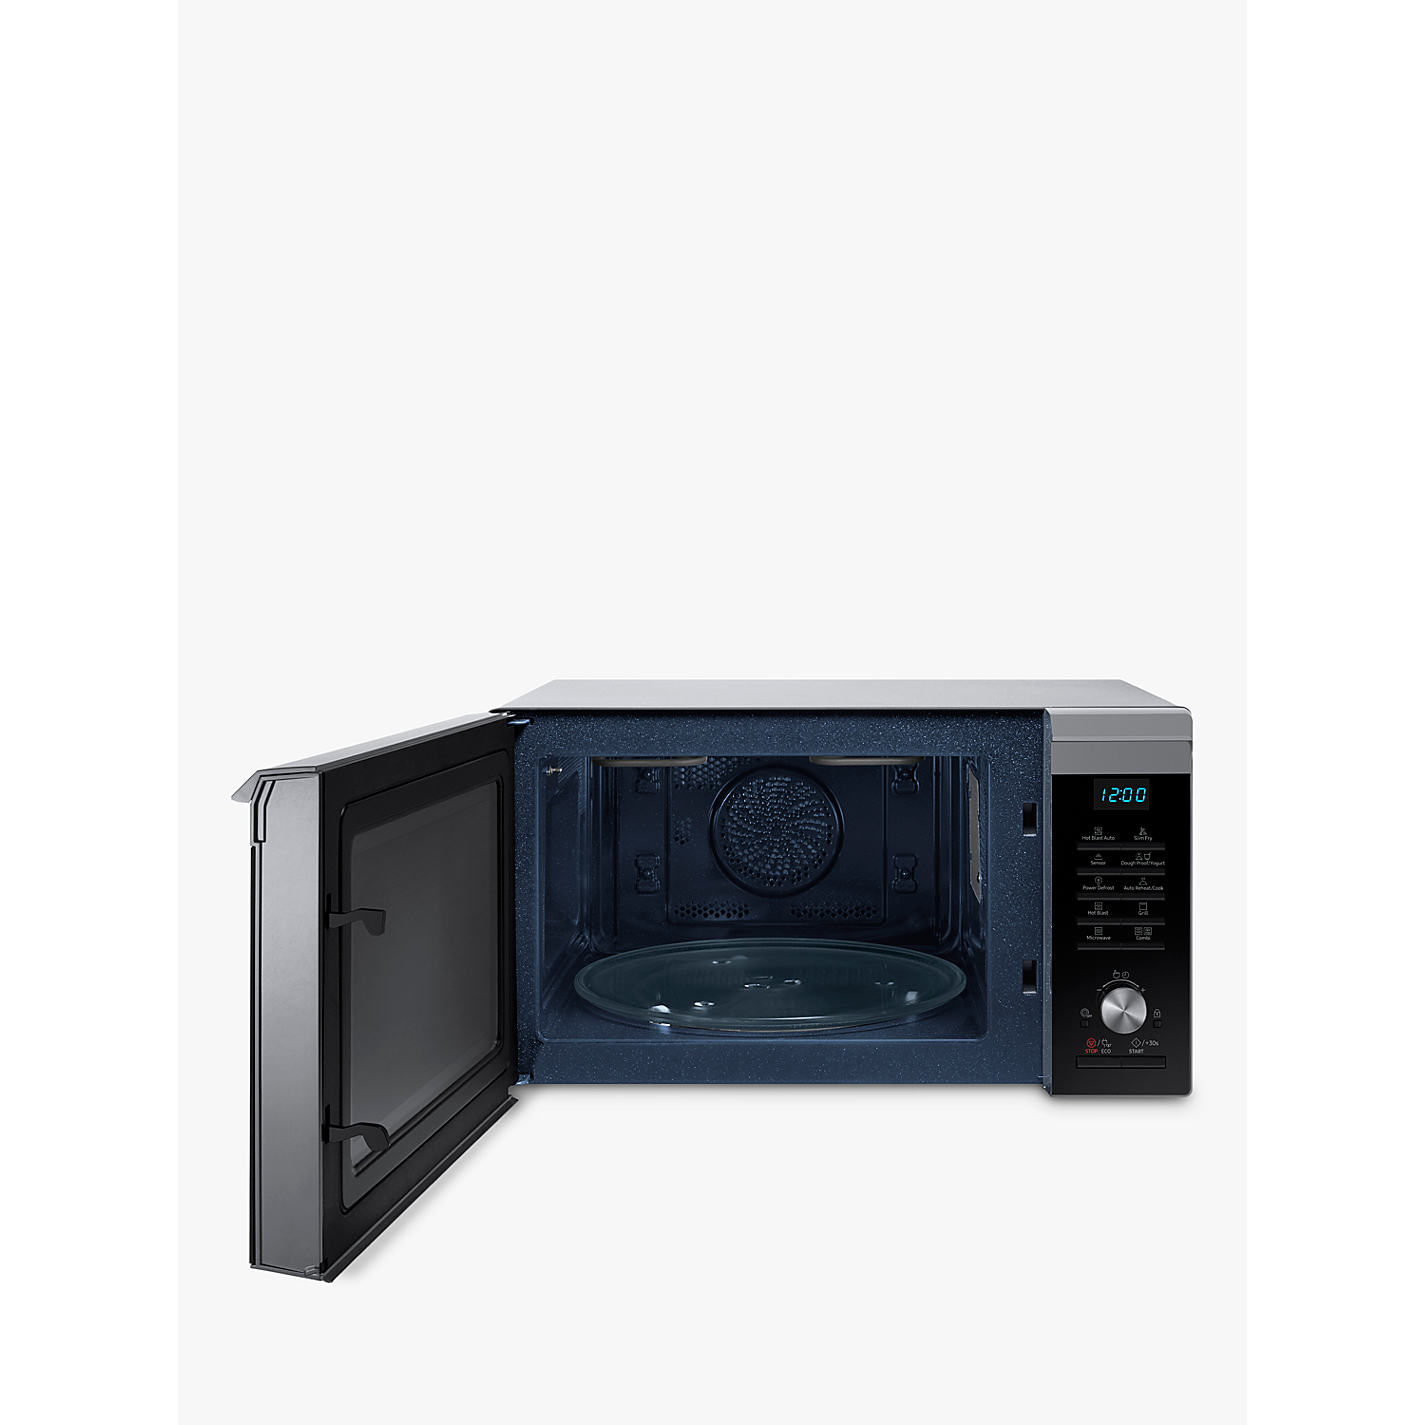 Combination Microwave Oven Bestmicrowave